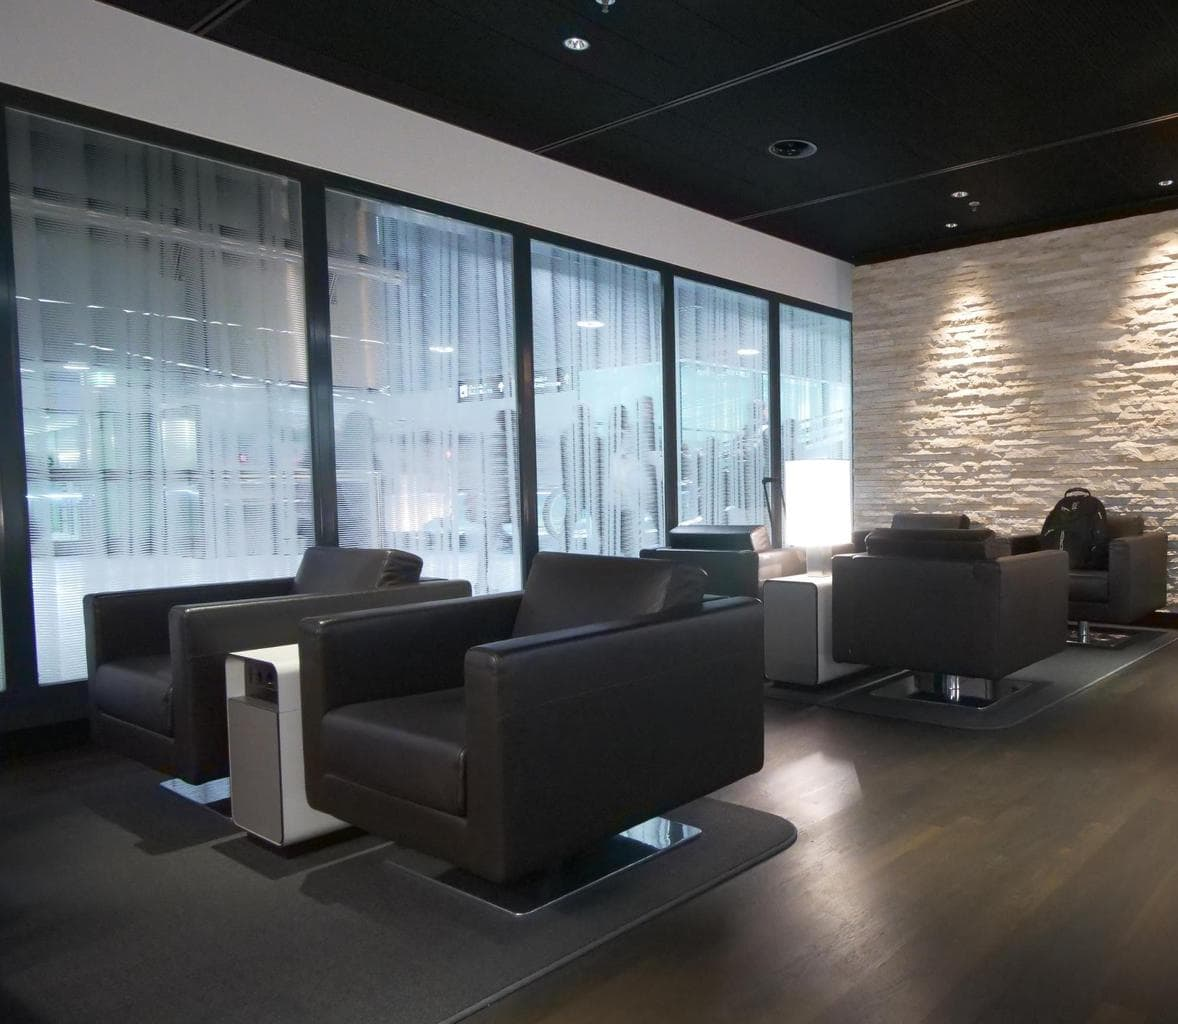 Sofa area at Swiss arrival lounge in Zurich